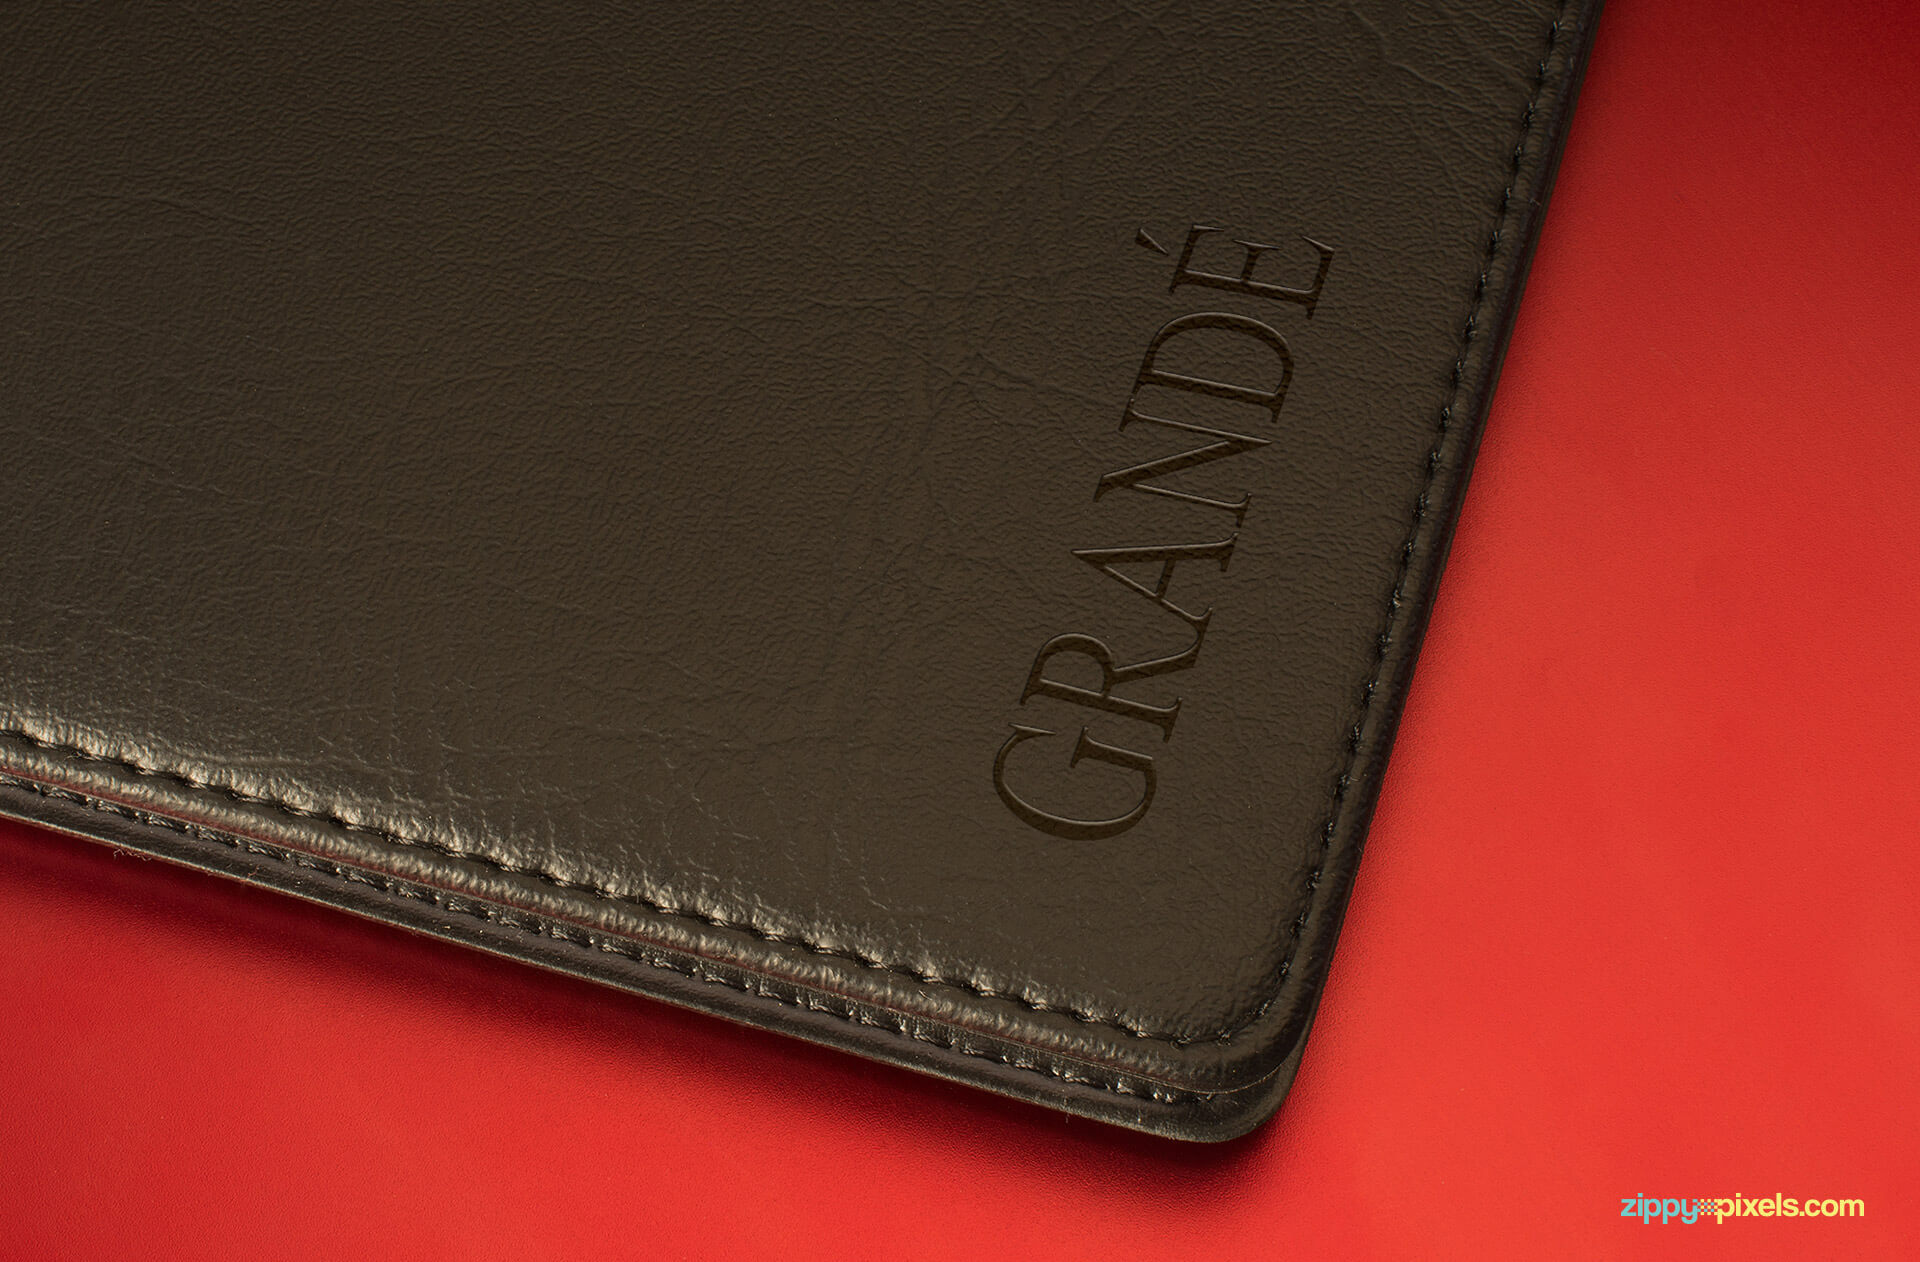 Logo Mockup - Debossed Logo on Leather Diary Cover